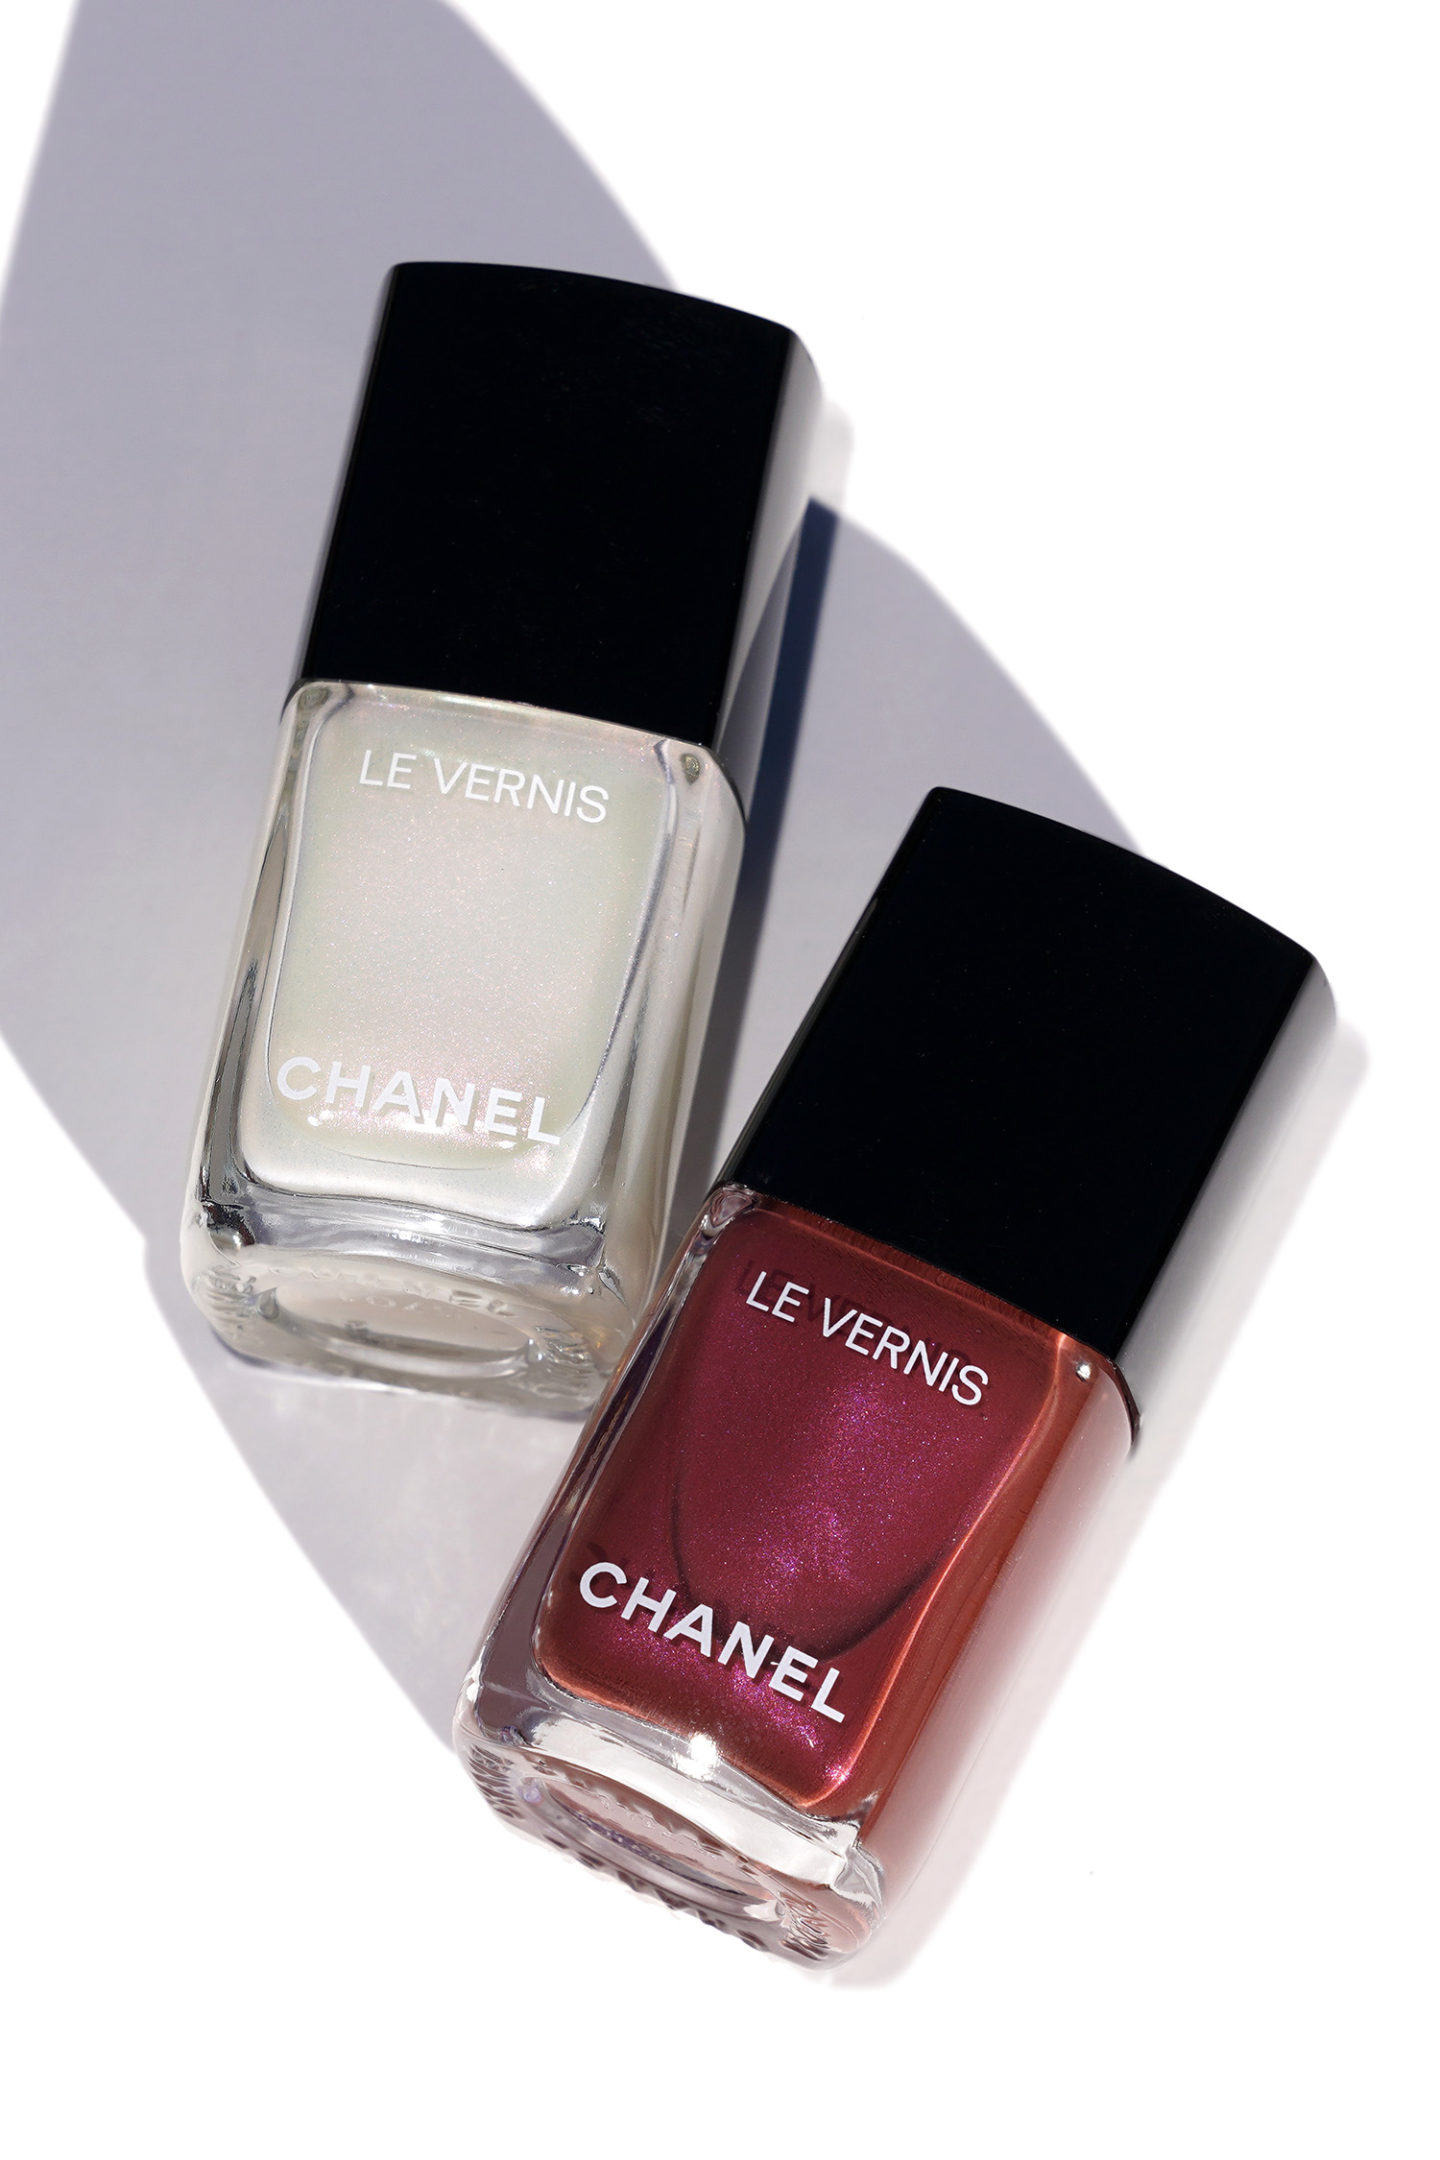 Chanel Le Vernis Perle Blanche 889 and Perle Burgundy 891